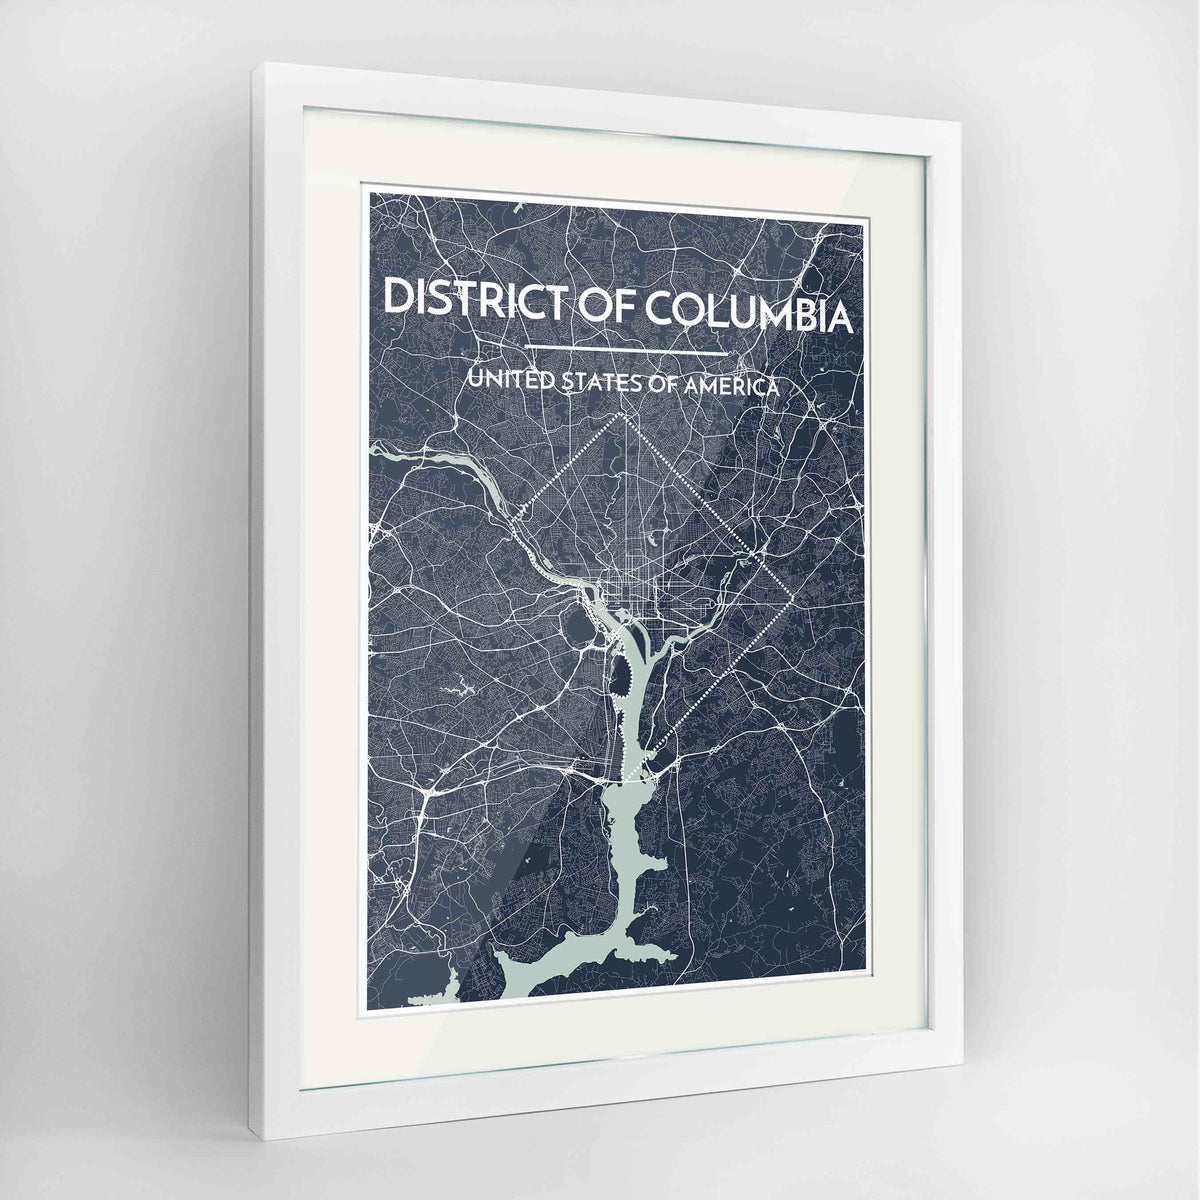 "Framed District of Columbia Map Art Print 24x36"" Contemporary White frame Point Two Design Group"